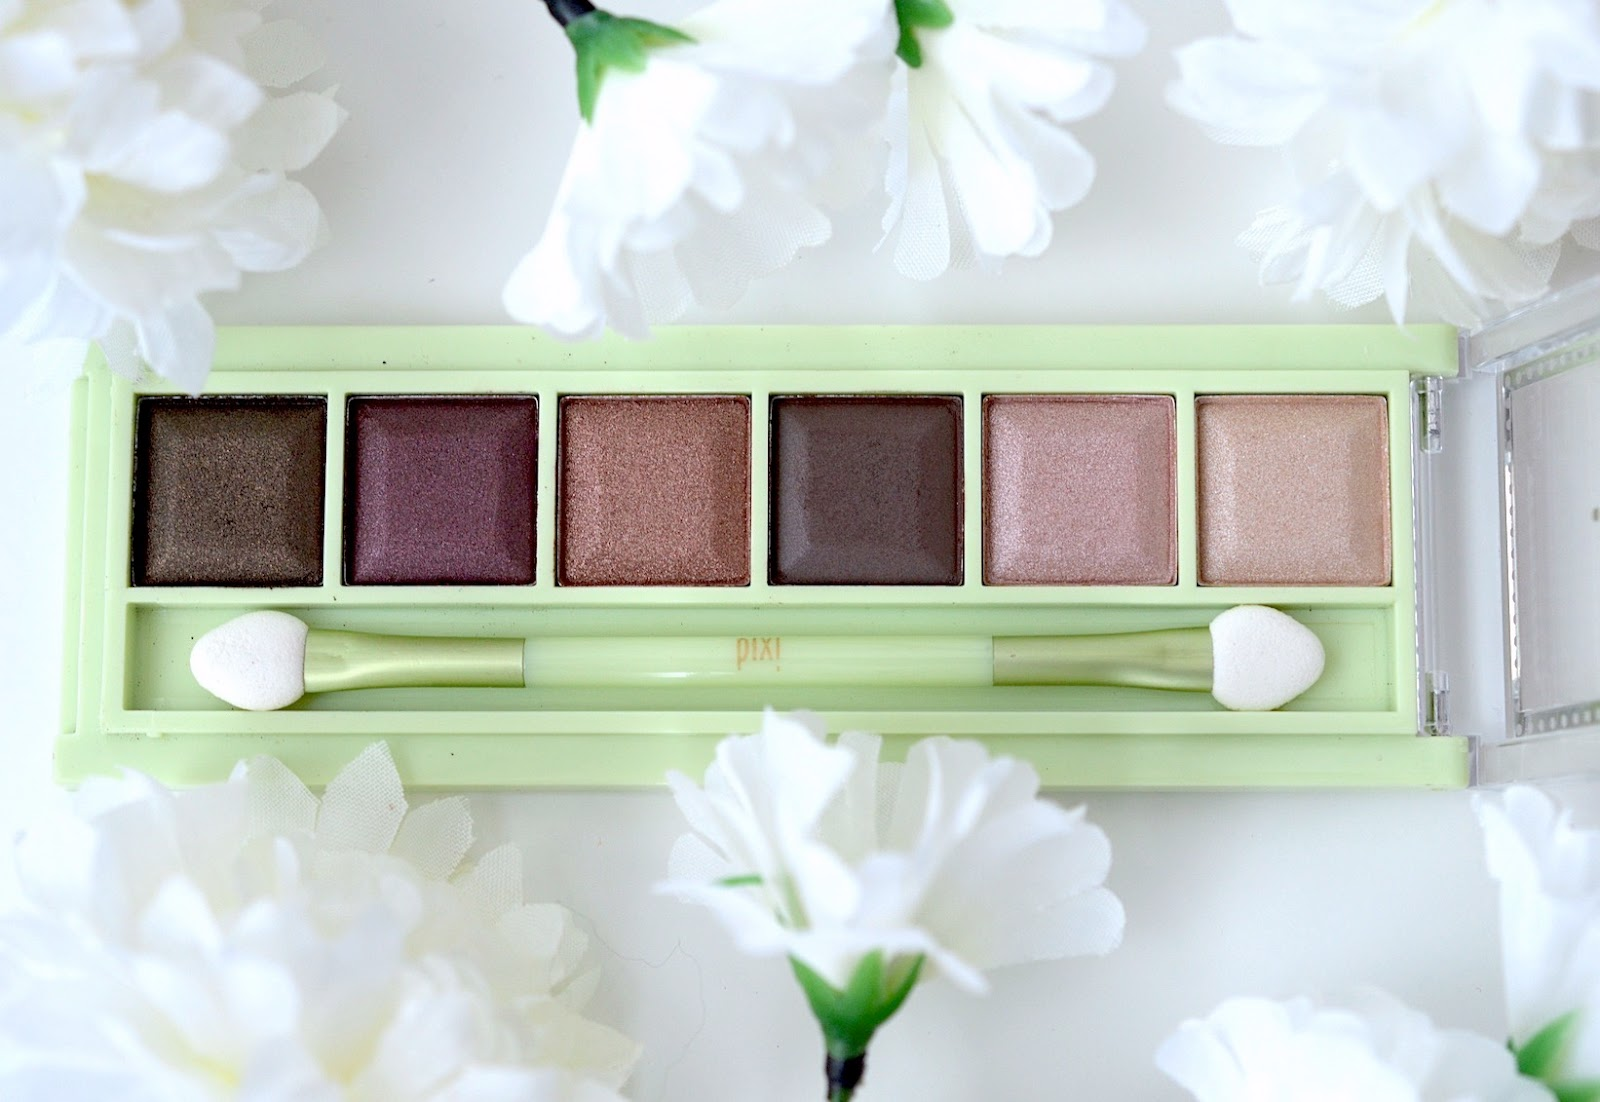 REVIEW: PIXI Mesmerizing Mineral Palette in Plum Quartz